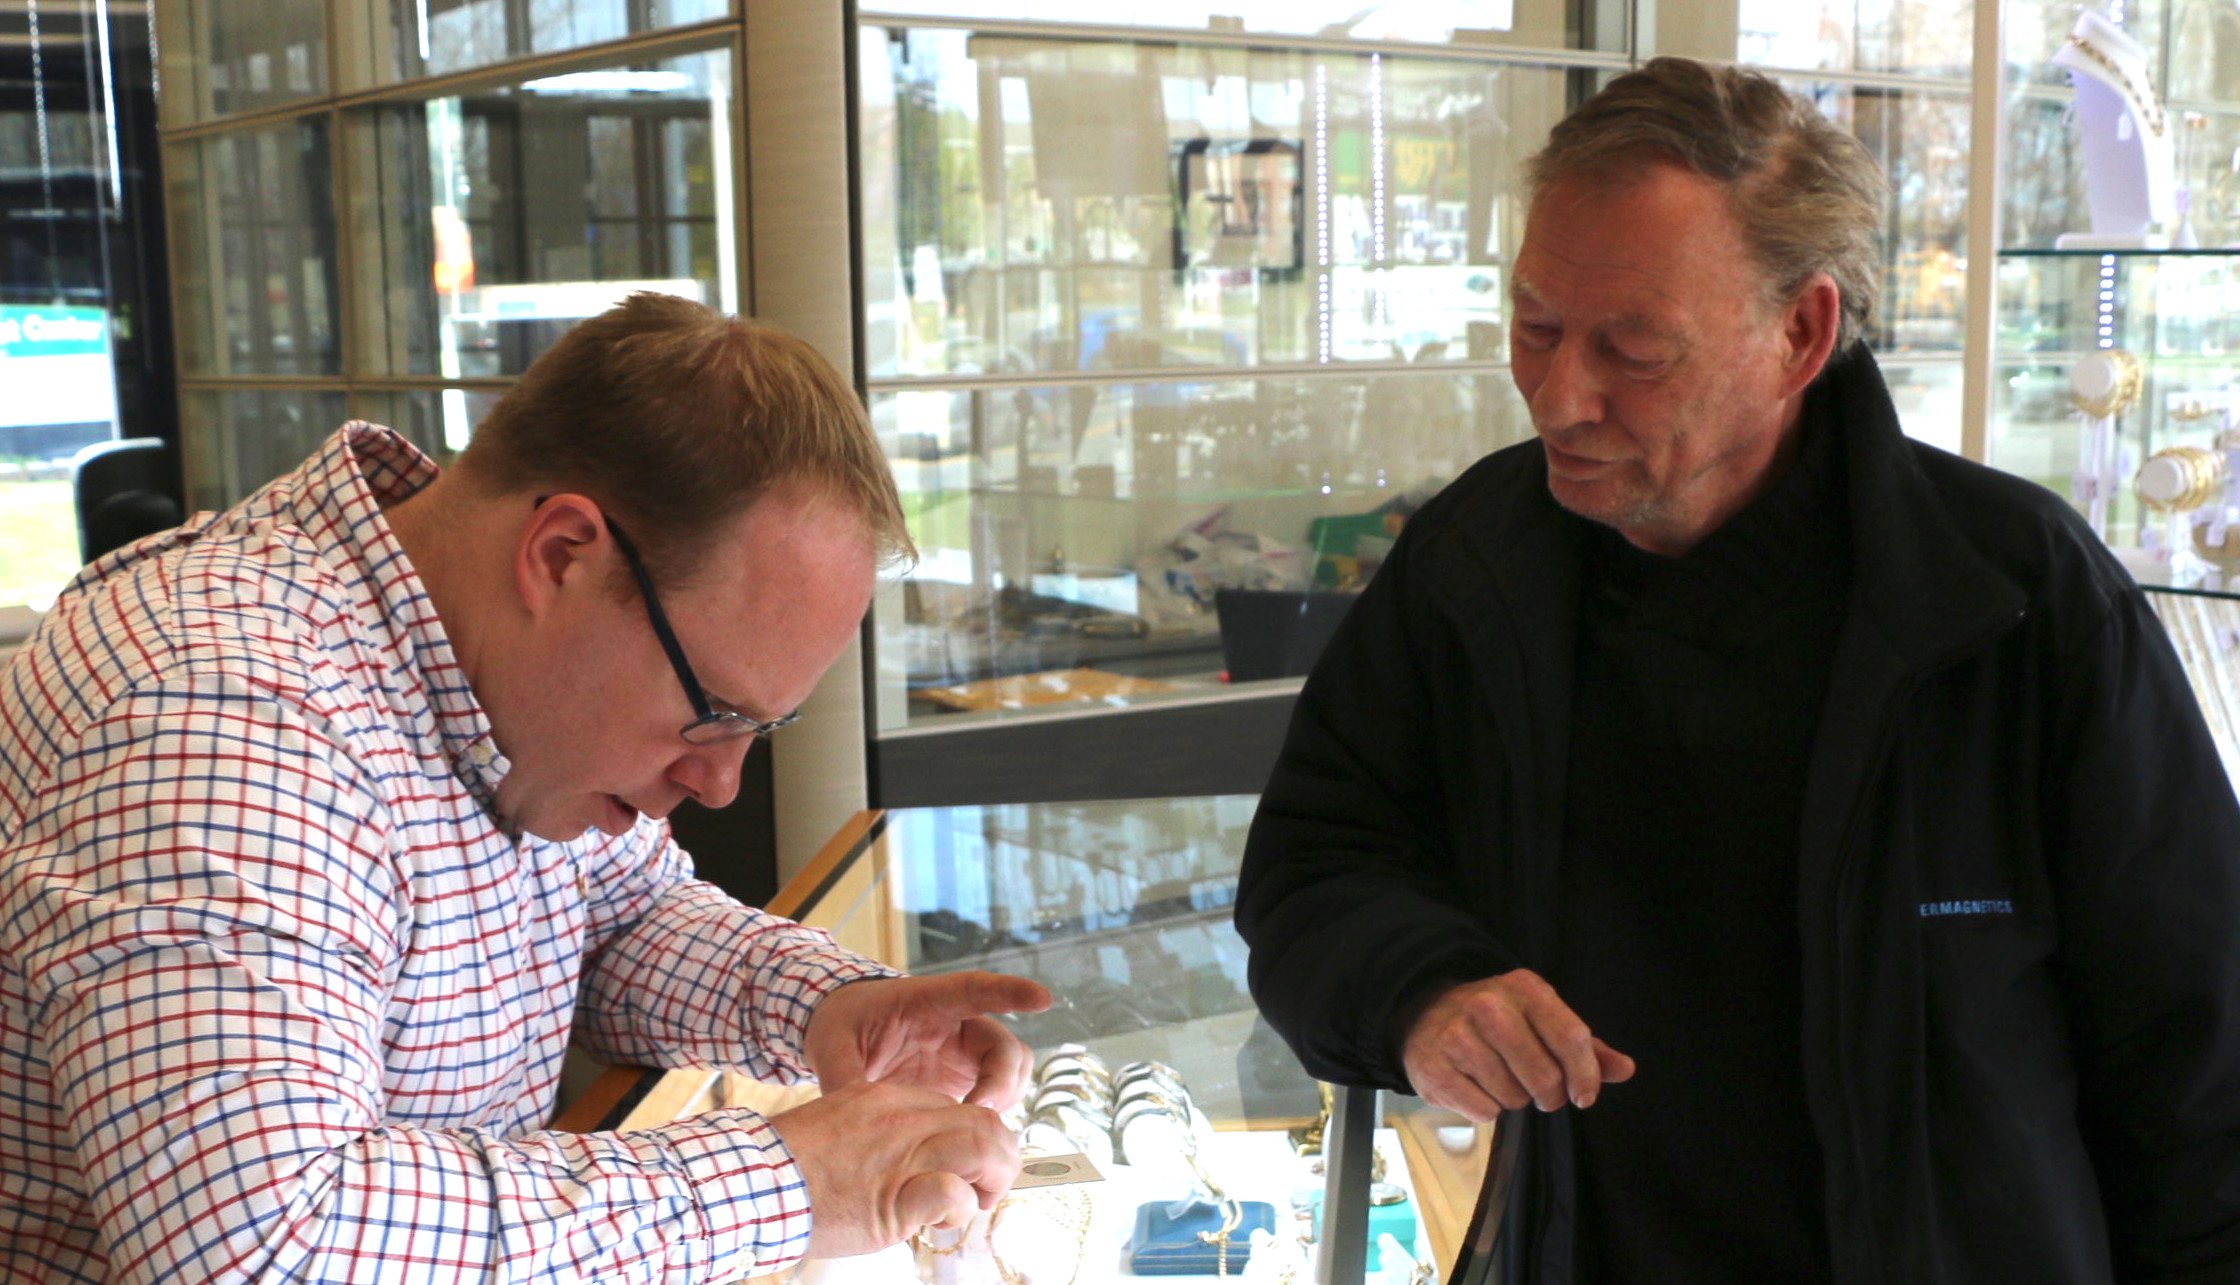 Dozois inspects the first 2019-W Quarter to arrive at Ferris Coin & Jewelry Co., at 199 Wolf Road.